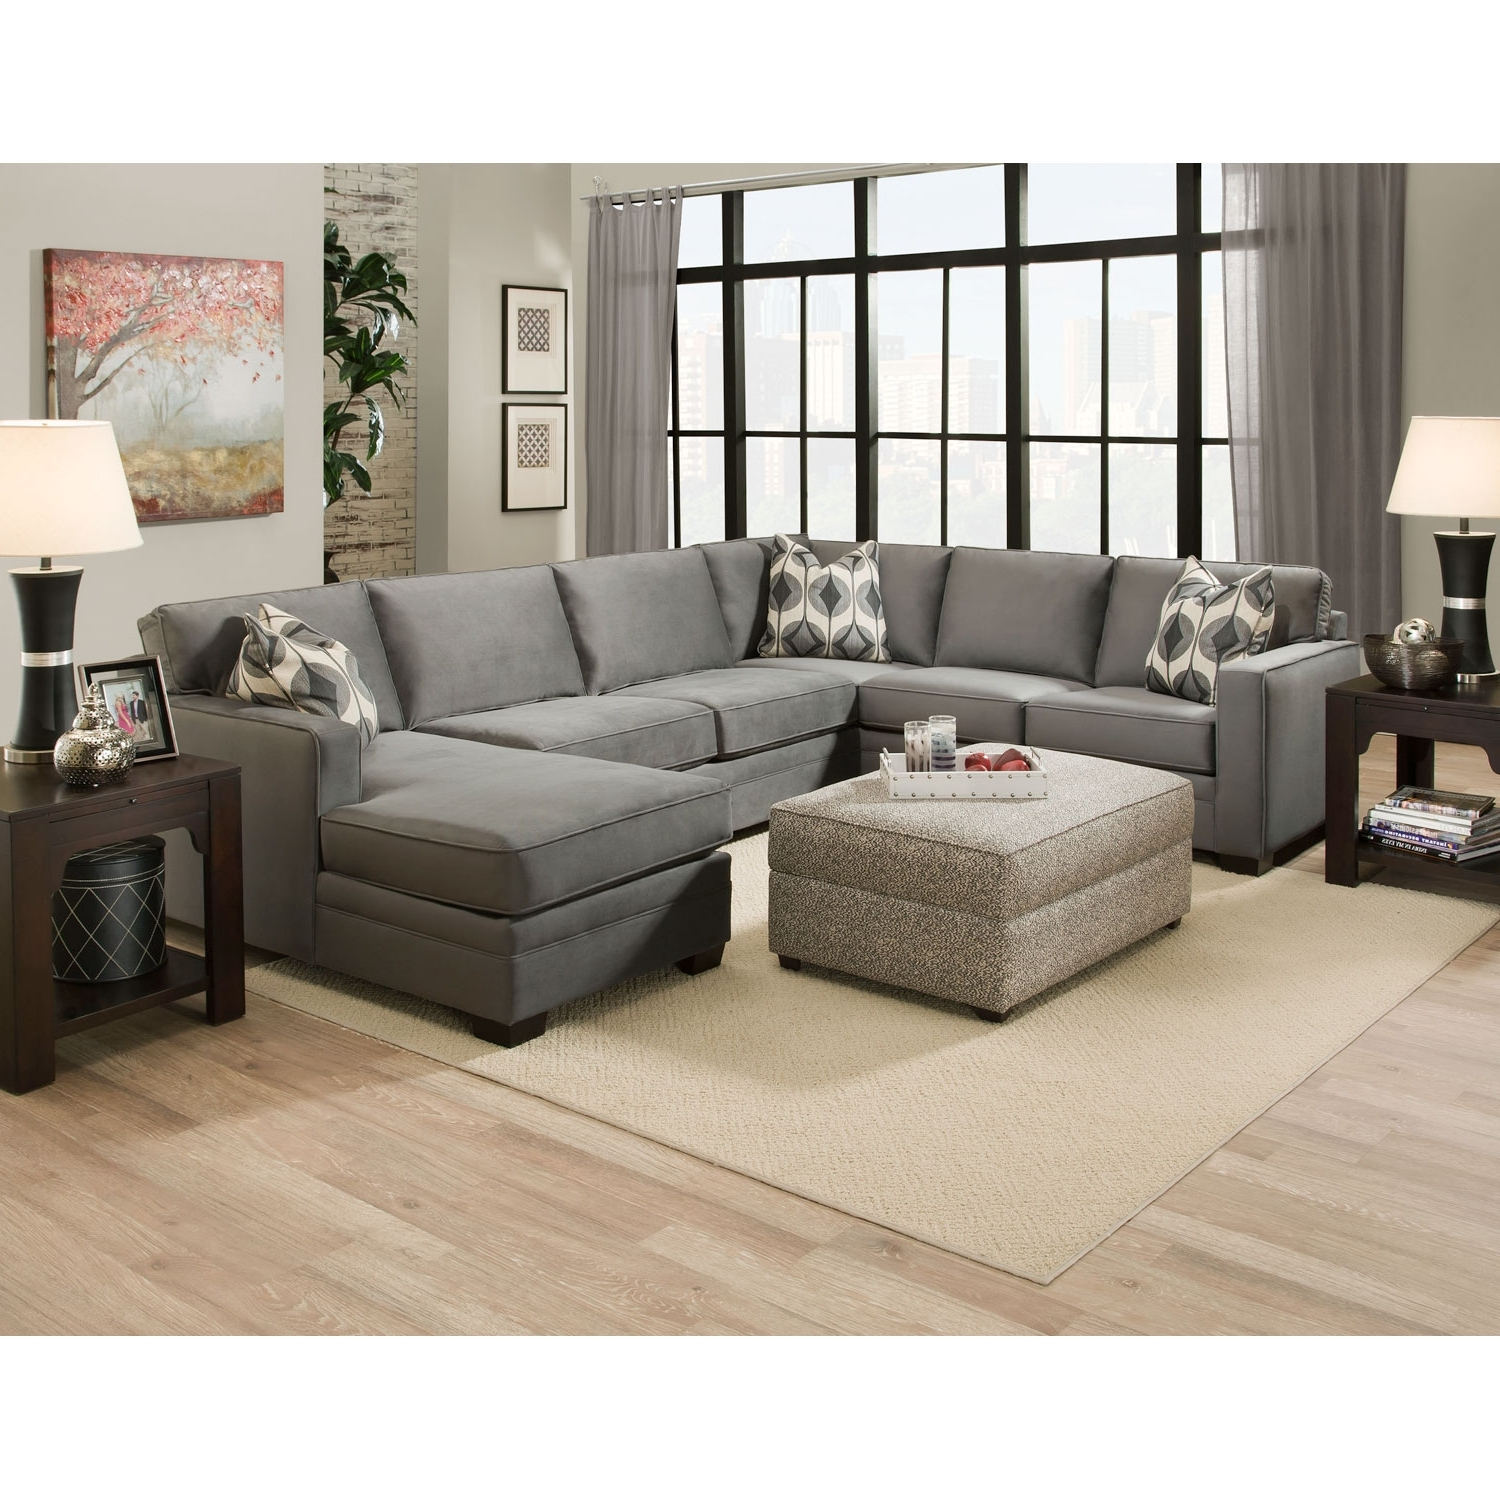 Gray Extra Large U Shaped Sectional Sofa With Chaise And Accent With Trendy Extra Large Sectional Sofas With Chaise (View 11 of 15)